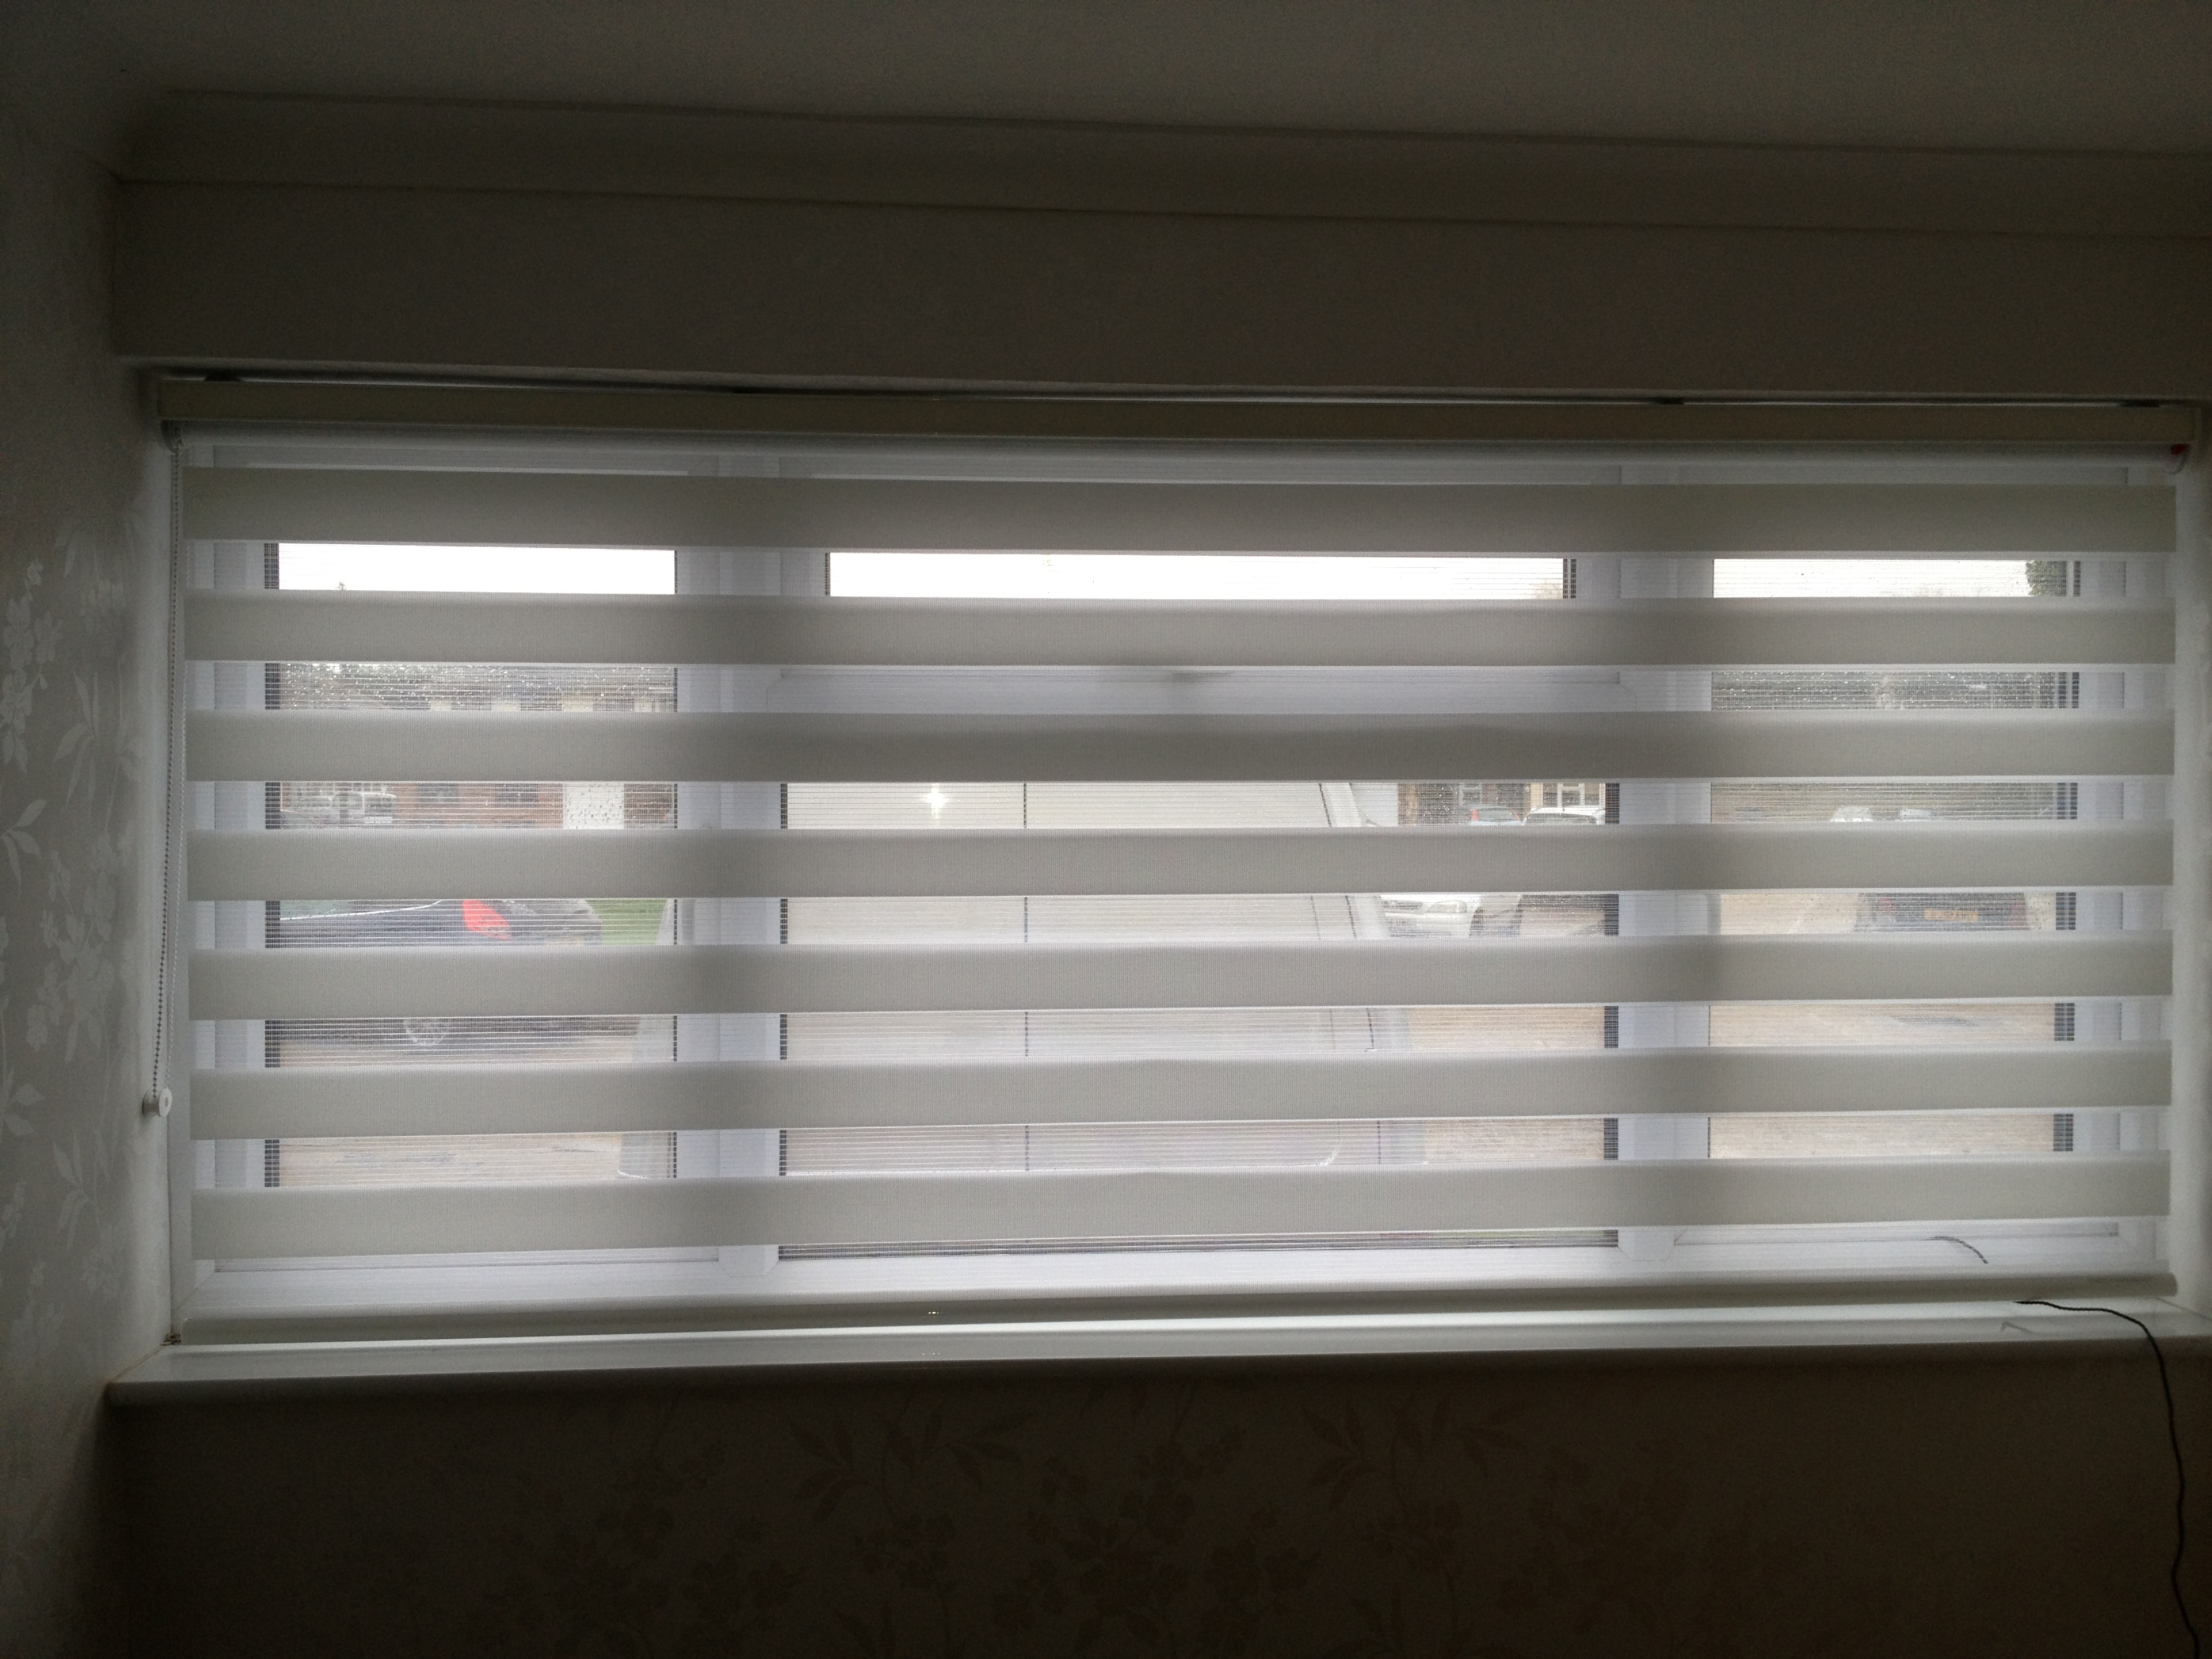 maxxmar vista next outlet blind day shades roman blinds inc coast west shutters mira shade and